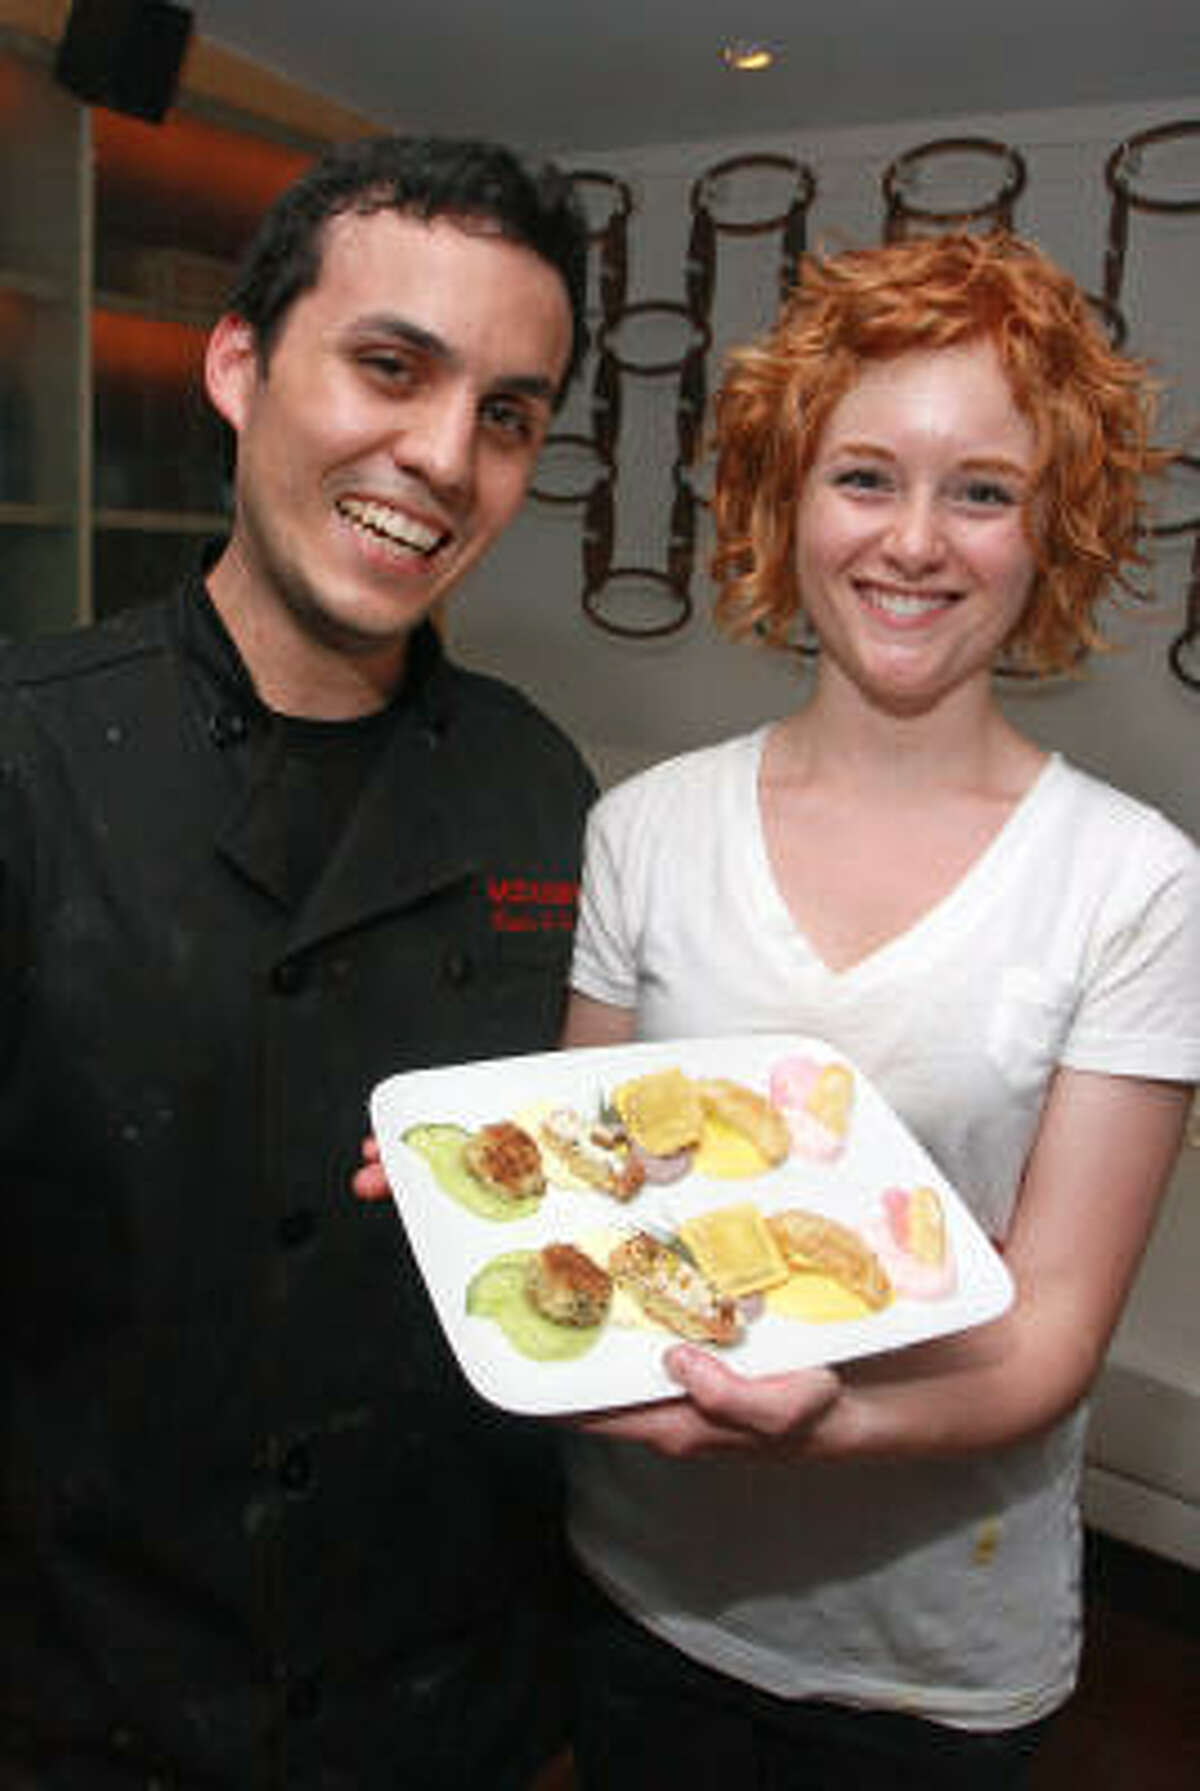 Carlos Ballon and Brittany Pool with a tray of hors d'oeuvres that Brittany designed and calls